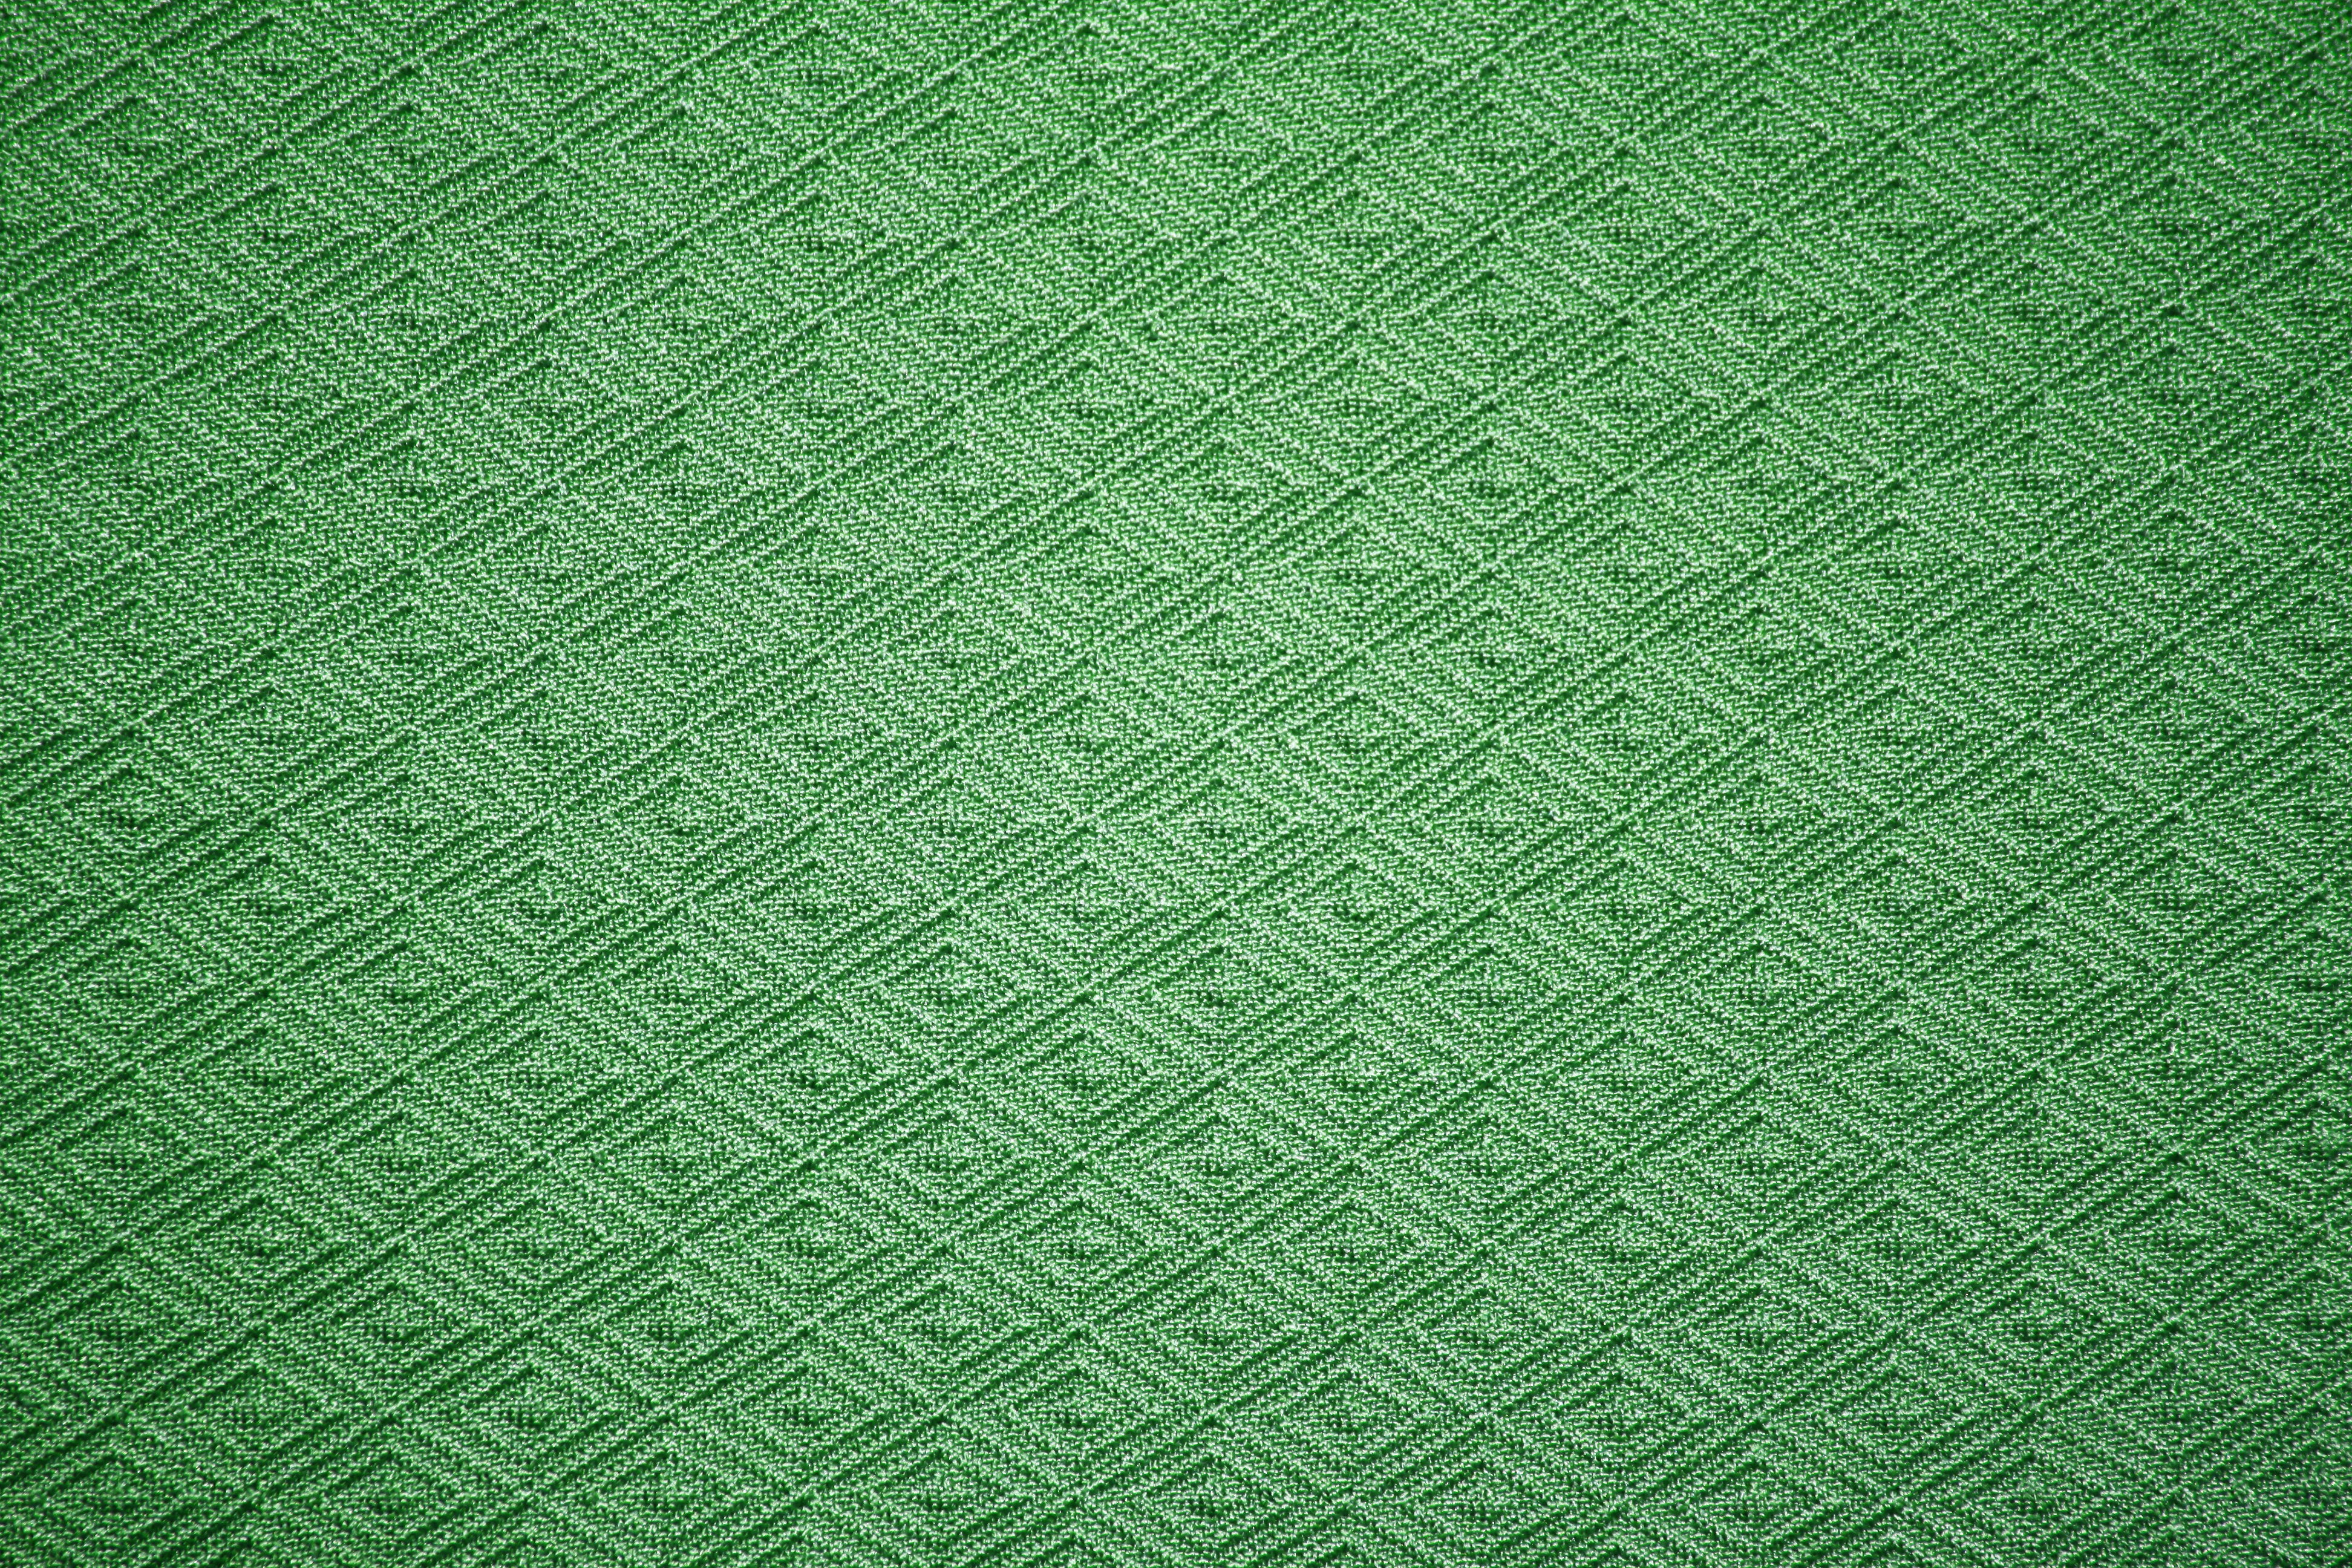 Green Knit Fabric With Diamond Pattern Texture